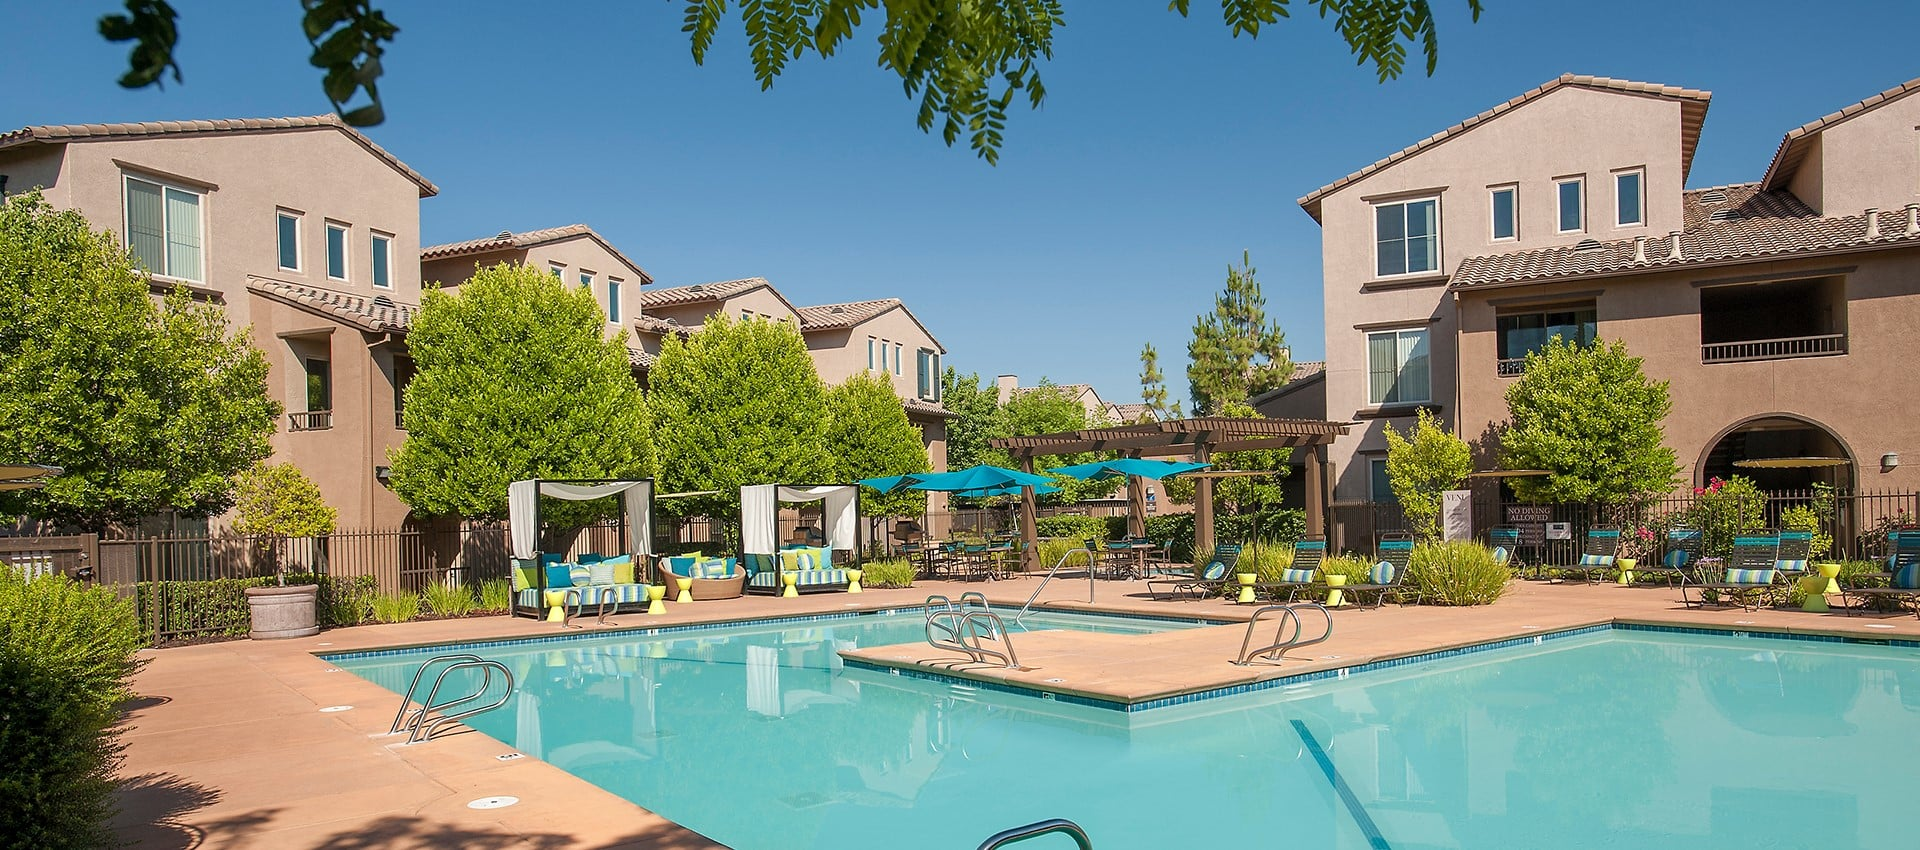 Expansive pool with sun deck at Venu at Galleria Condominium Rentals in Roseville, California